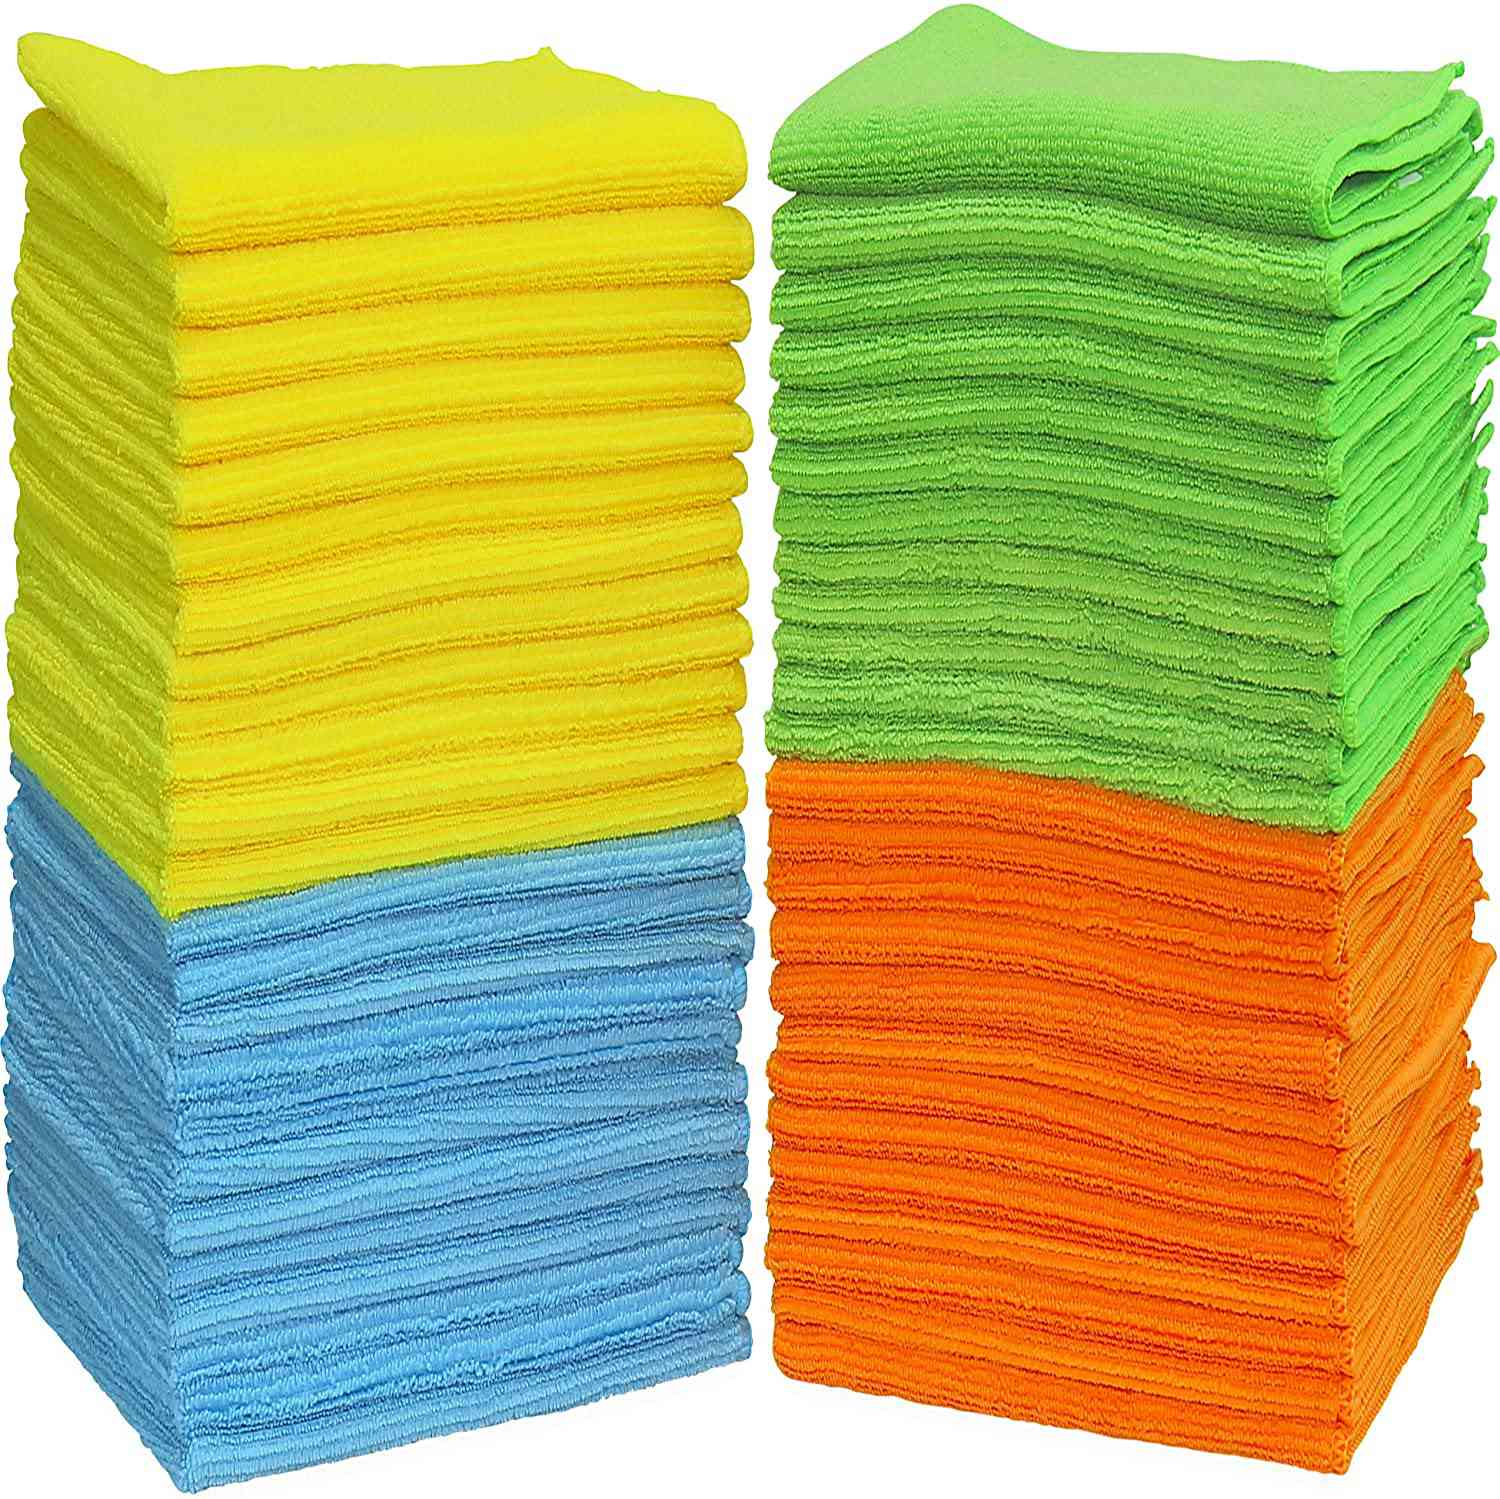 Simple Houseware Microfiber Cleaning Cloth